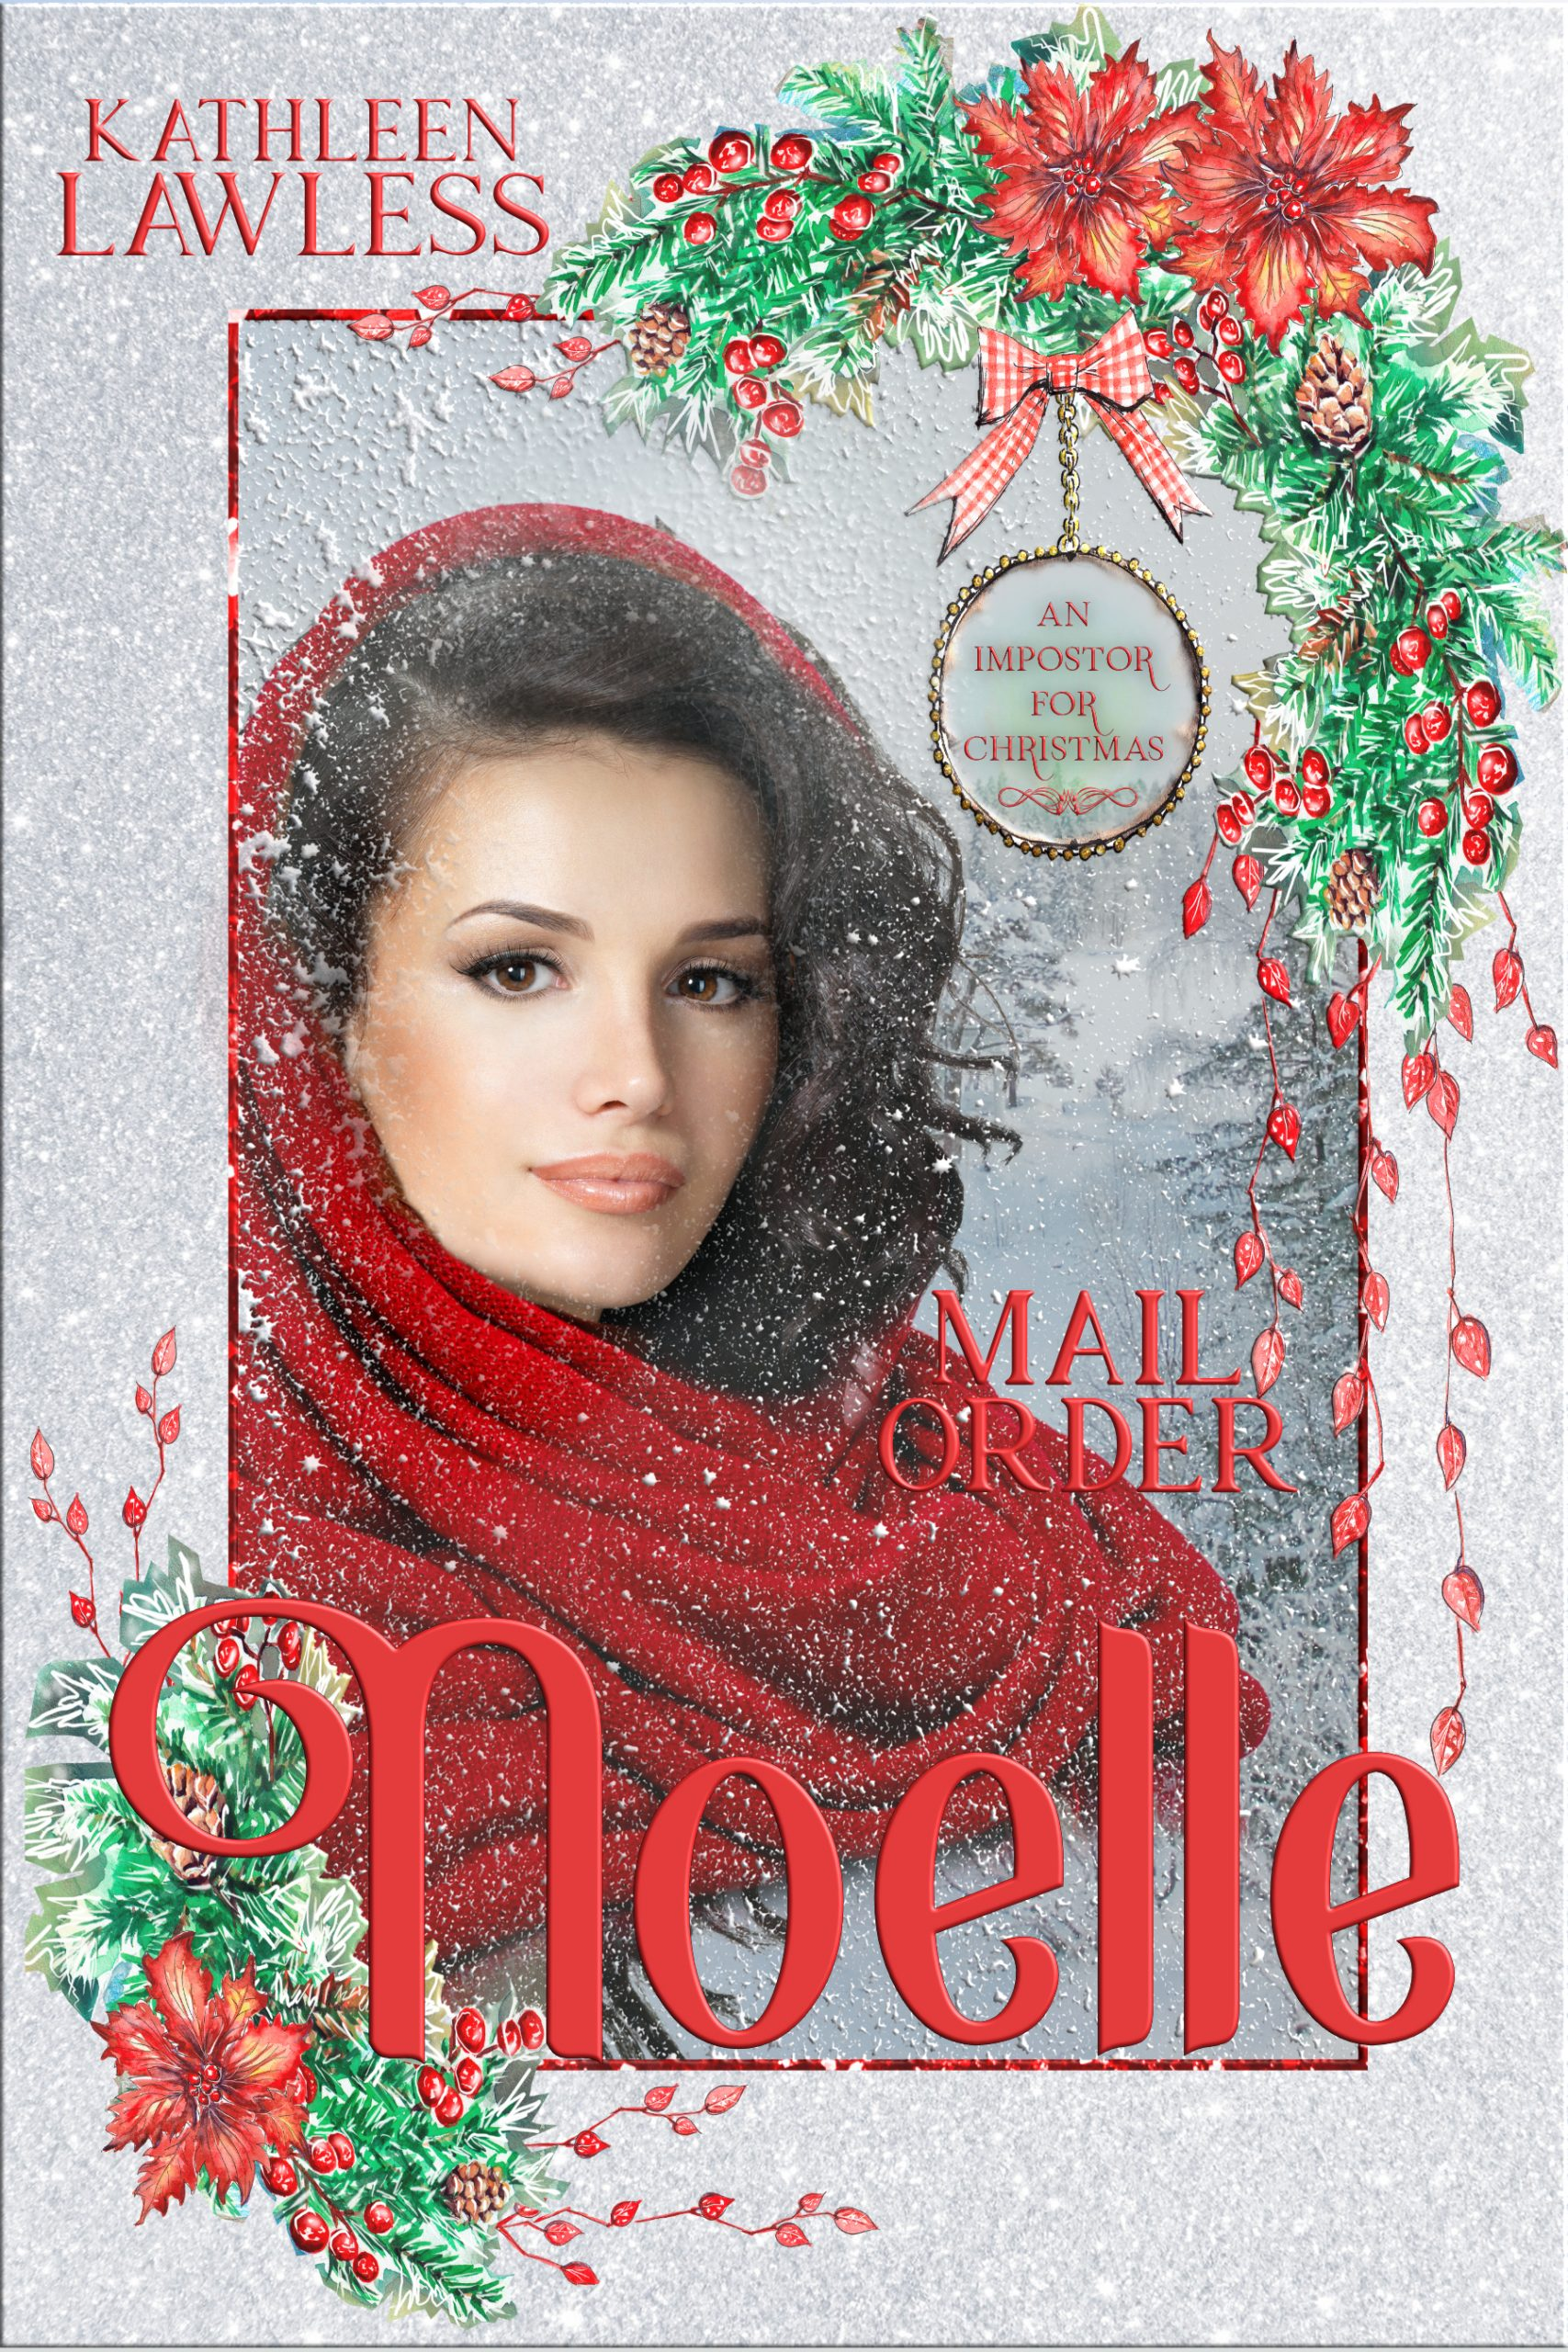 A Christmas scene with a pretty dark haired girl in a red cloak.